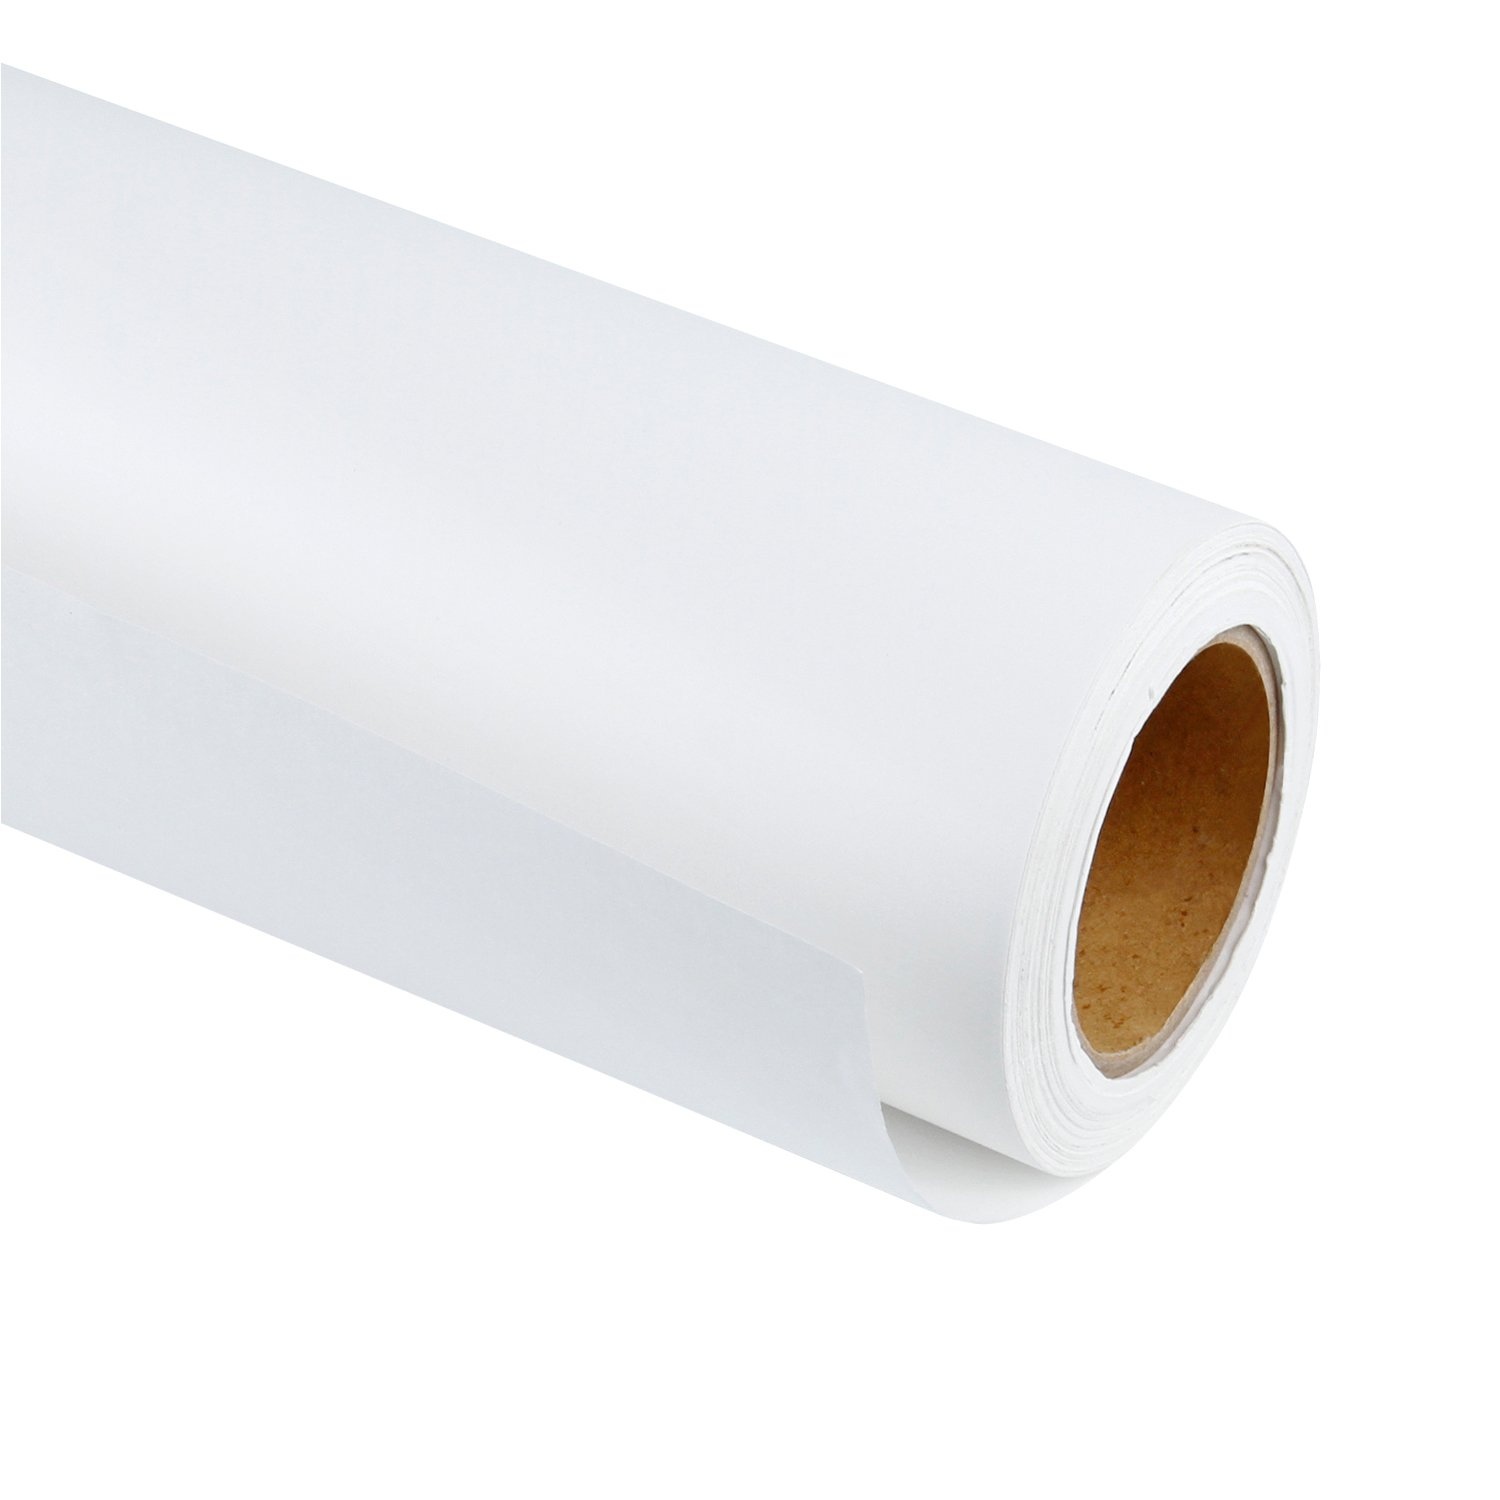 RUSPEPA White Kraft Paper Roll - 36 inch x 100 Feet - Recycled Paper Perfect for Gift Wrapping, Craft, Packing, Floor Covering, Dunnage, Parcel, Table Runner by RUSPEPA